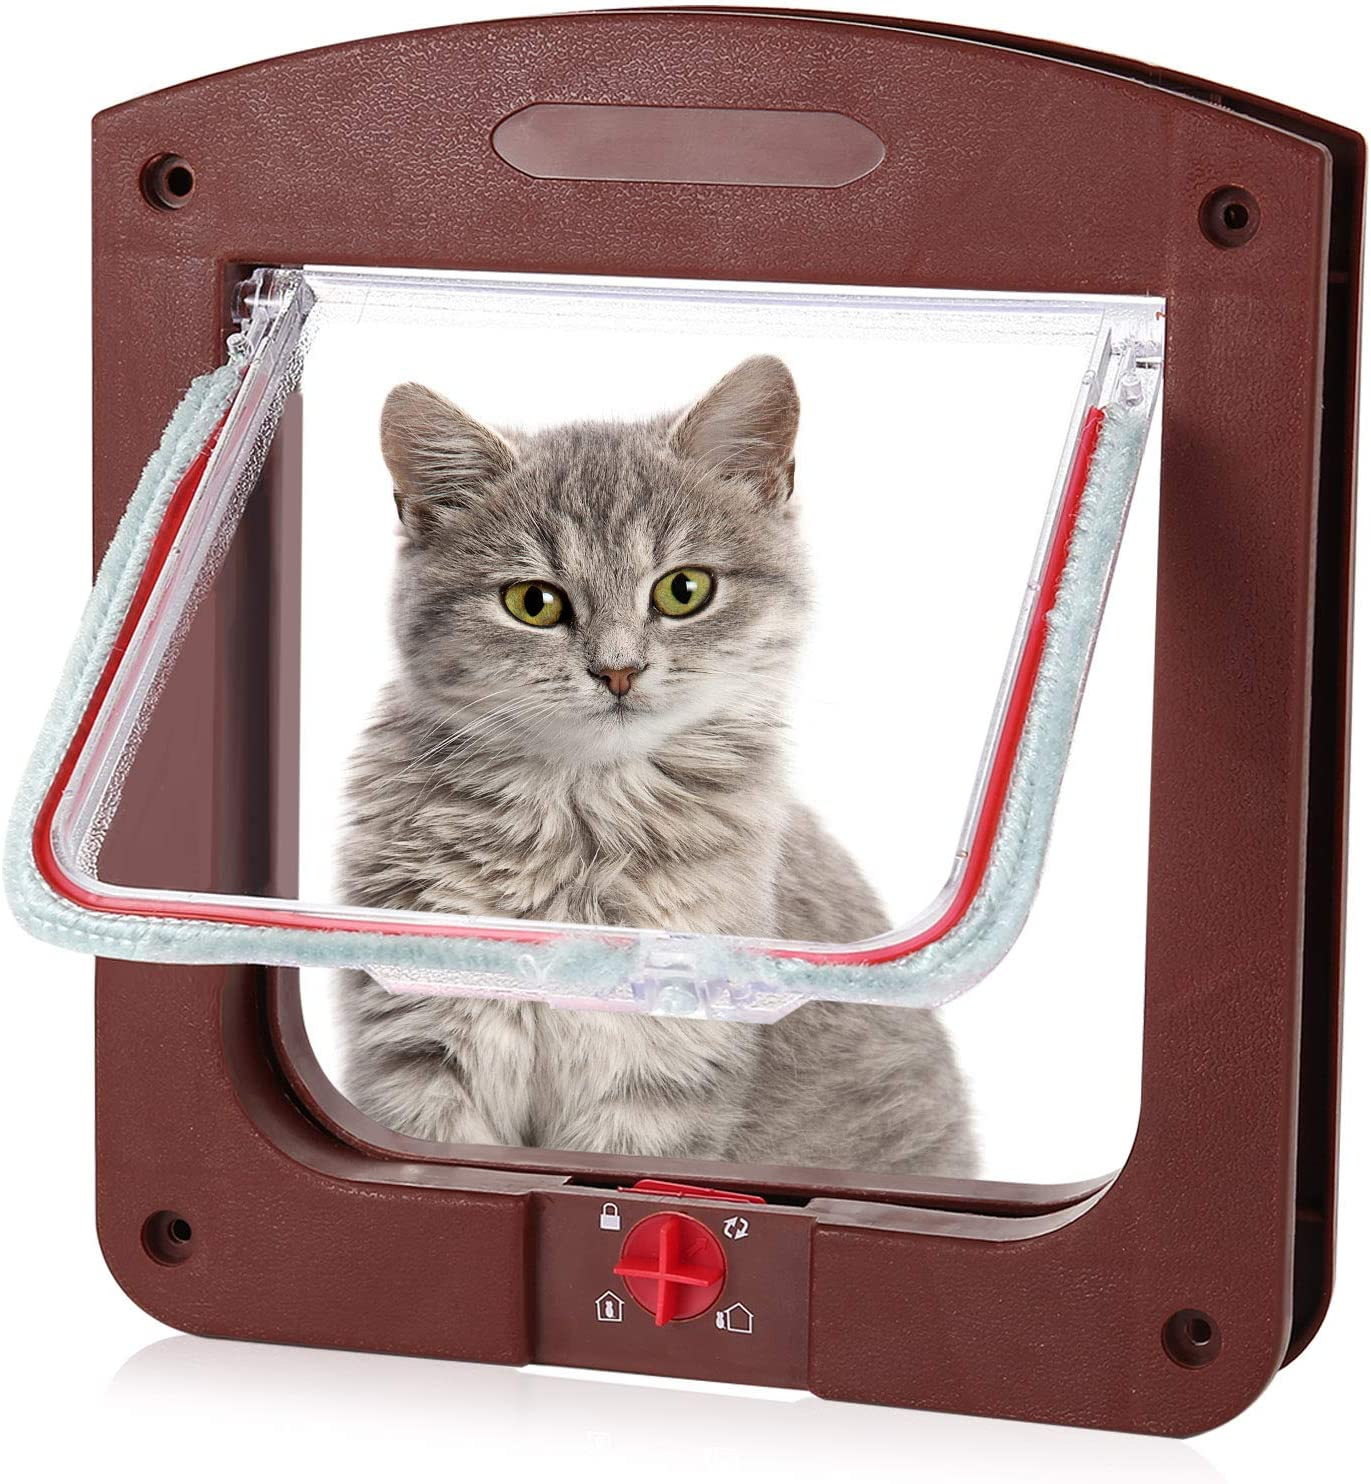 Cat Dog Flap with Tunnel Pet Flap for Cats Small Dogs and Small Pets Brown metagio Cat Flap